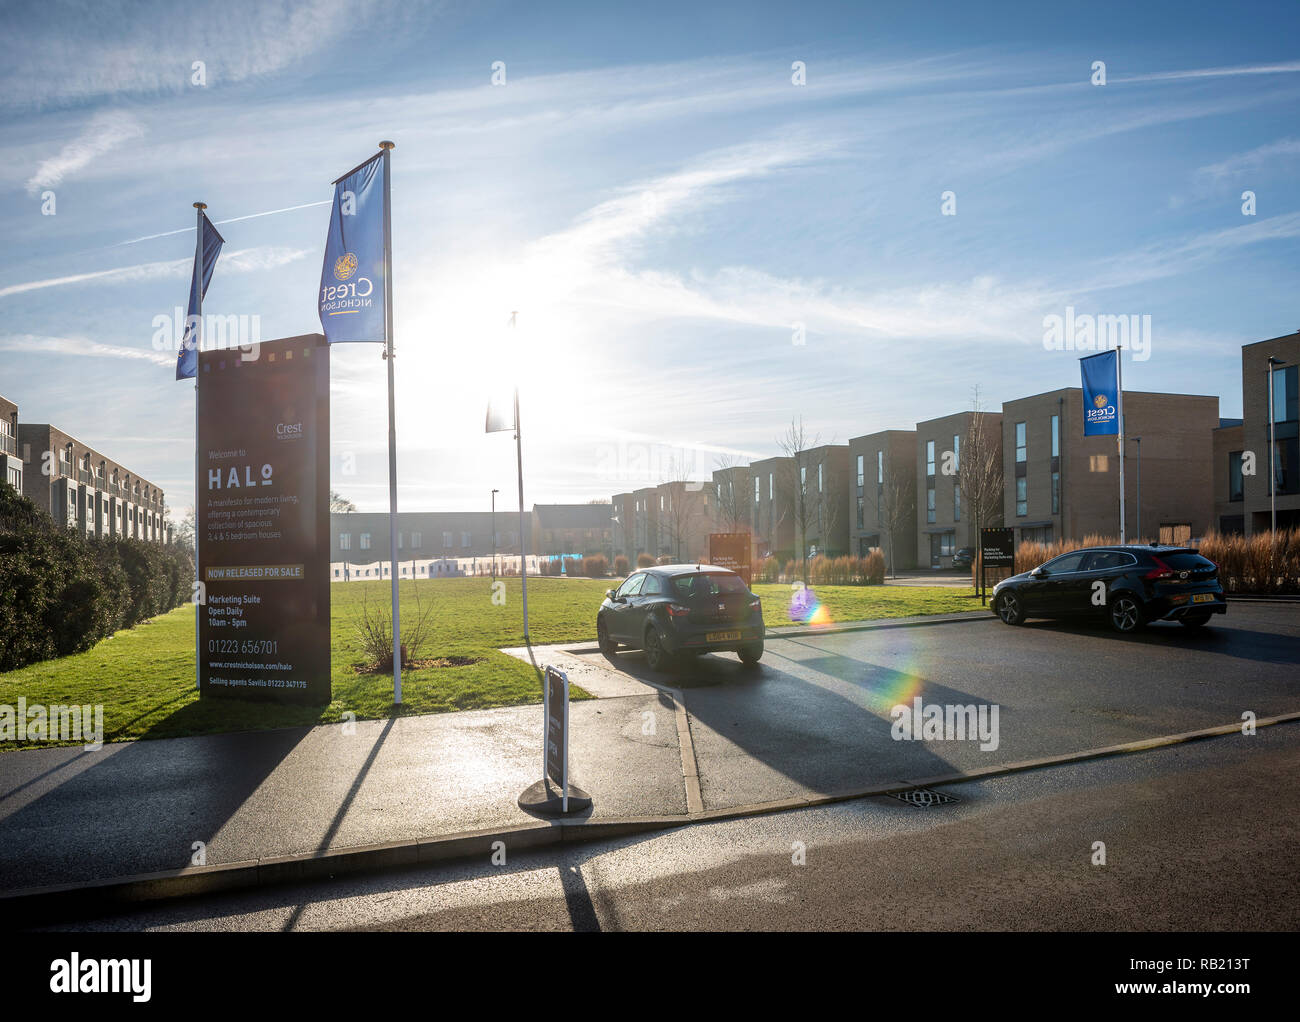 Modern housing in the Aura development on the outskirts of Cambridge, UK - Stock Image